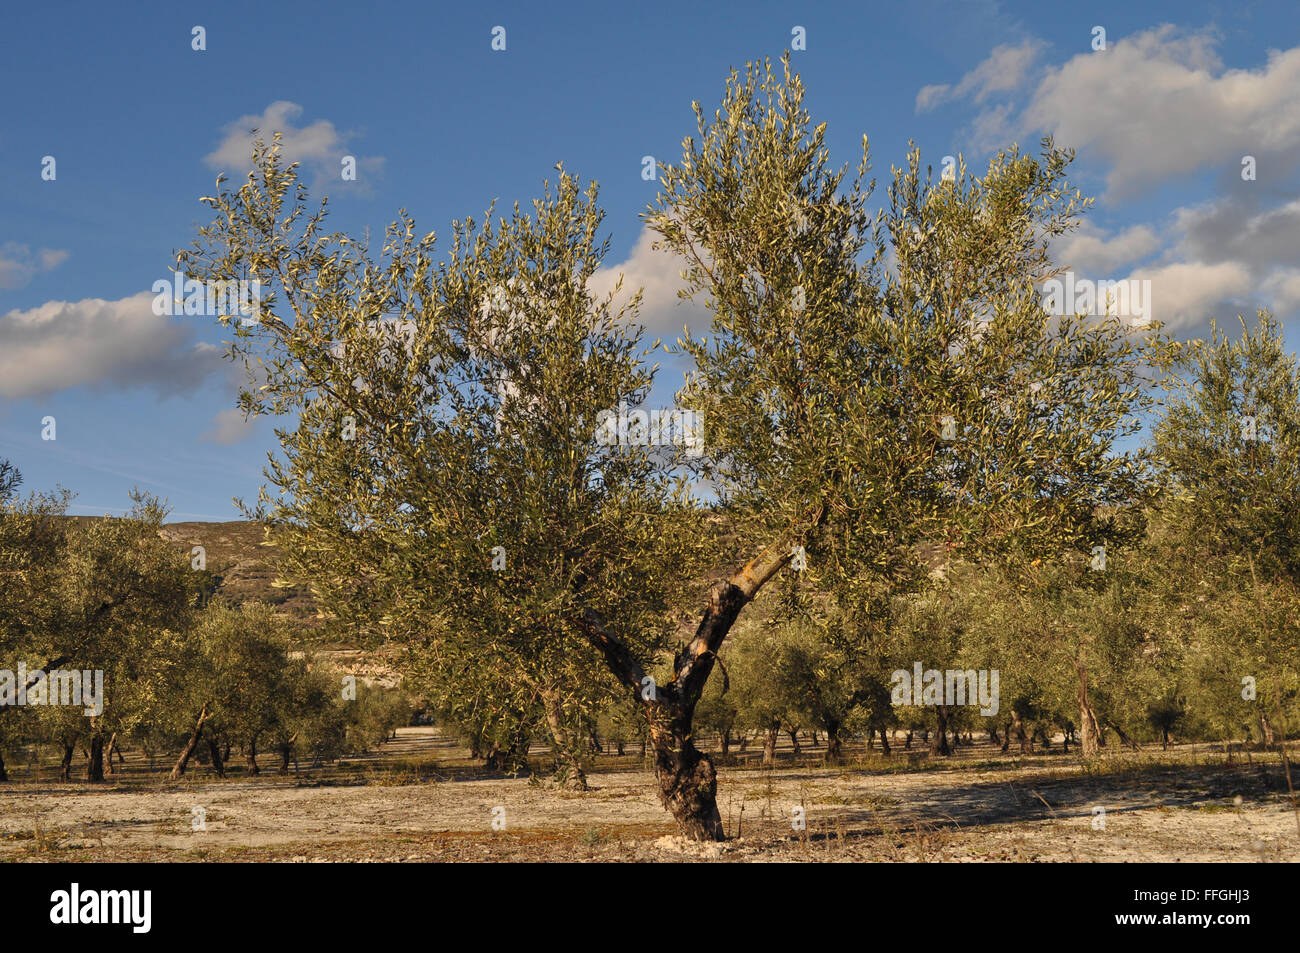 Olive tree, Olea europaea, in an orchard, Alicante Province, Spain. Stock Photo